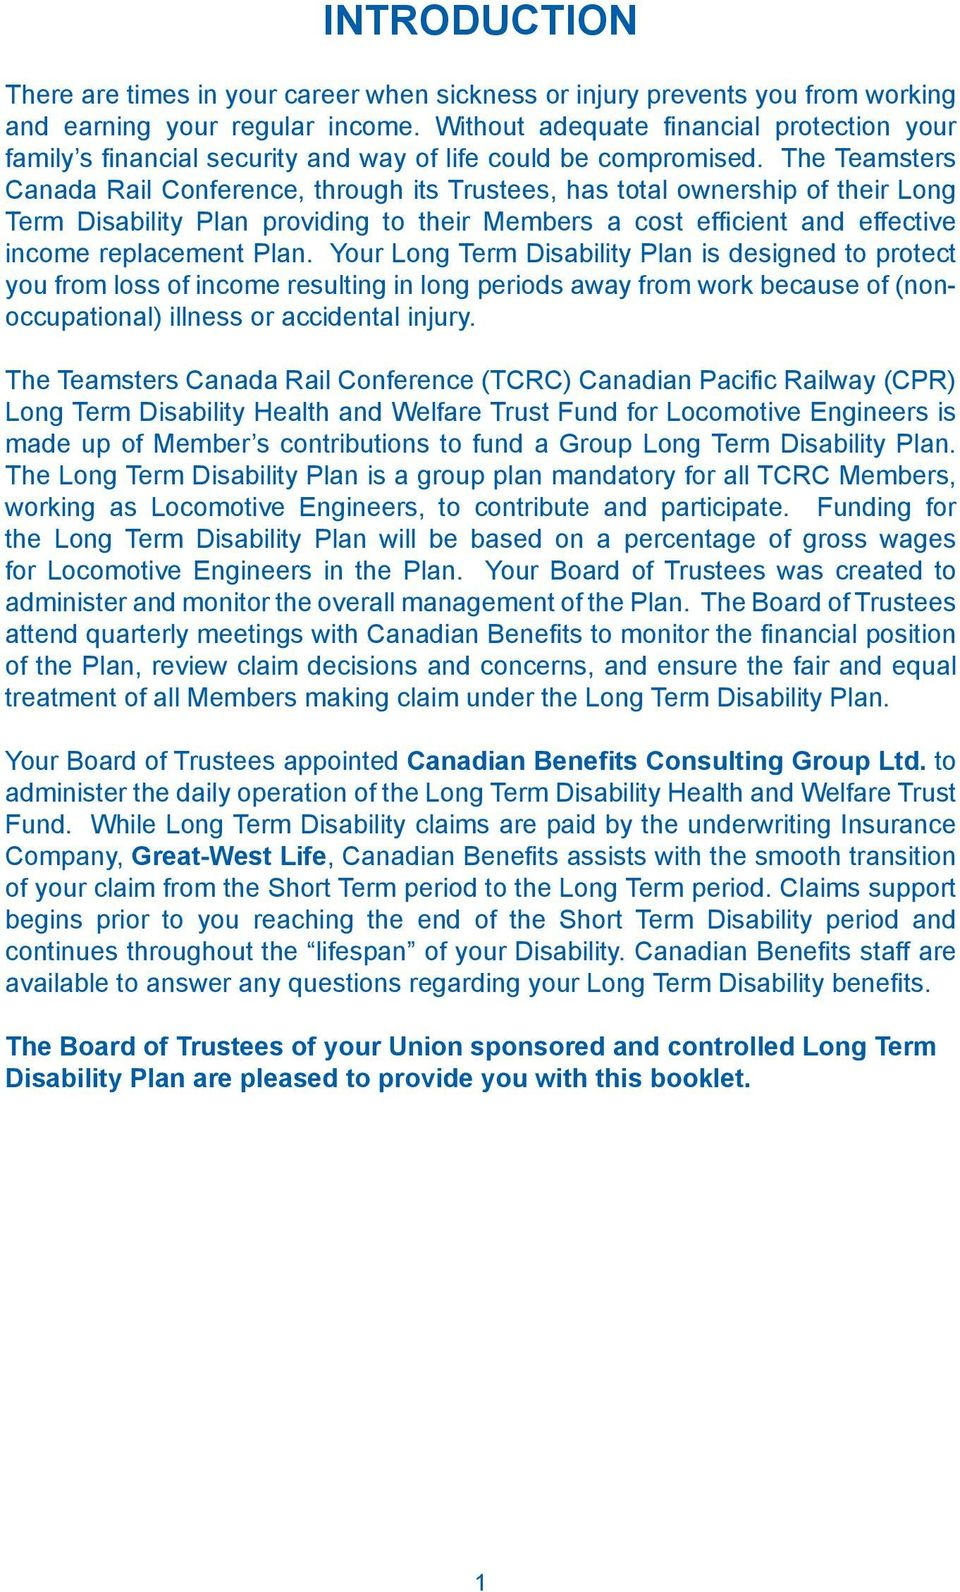 The Teamsters Canada Rail Conference, through its Trustees, has total ownership of their Long Term Disability Plan providing to their Members a cost efficient and effective income replacement Plan.